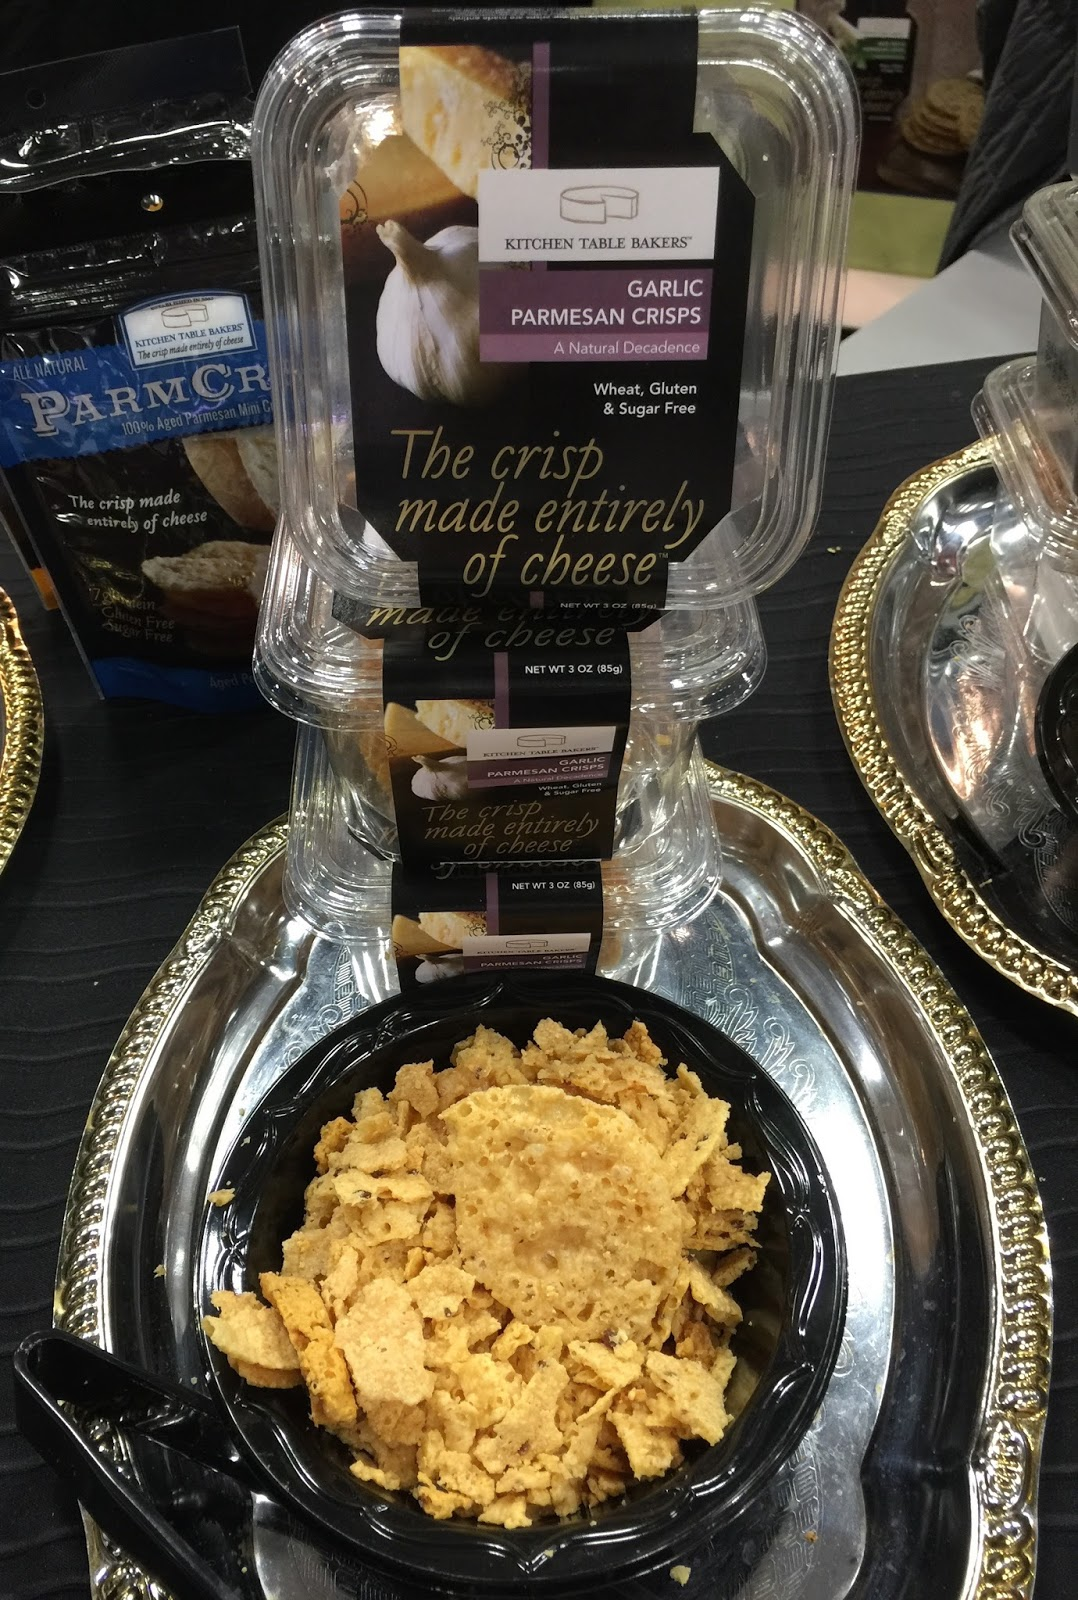 Tea Time Adventures And Other Food Exploits Kitchen Table Bakers At The 2016 Fancy Food Show